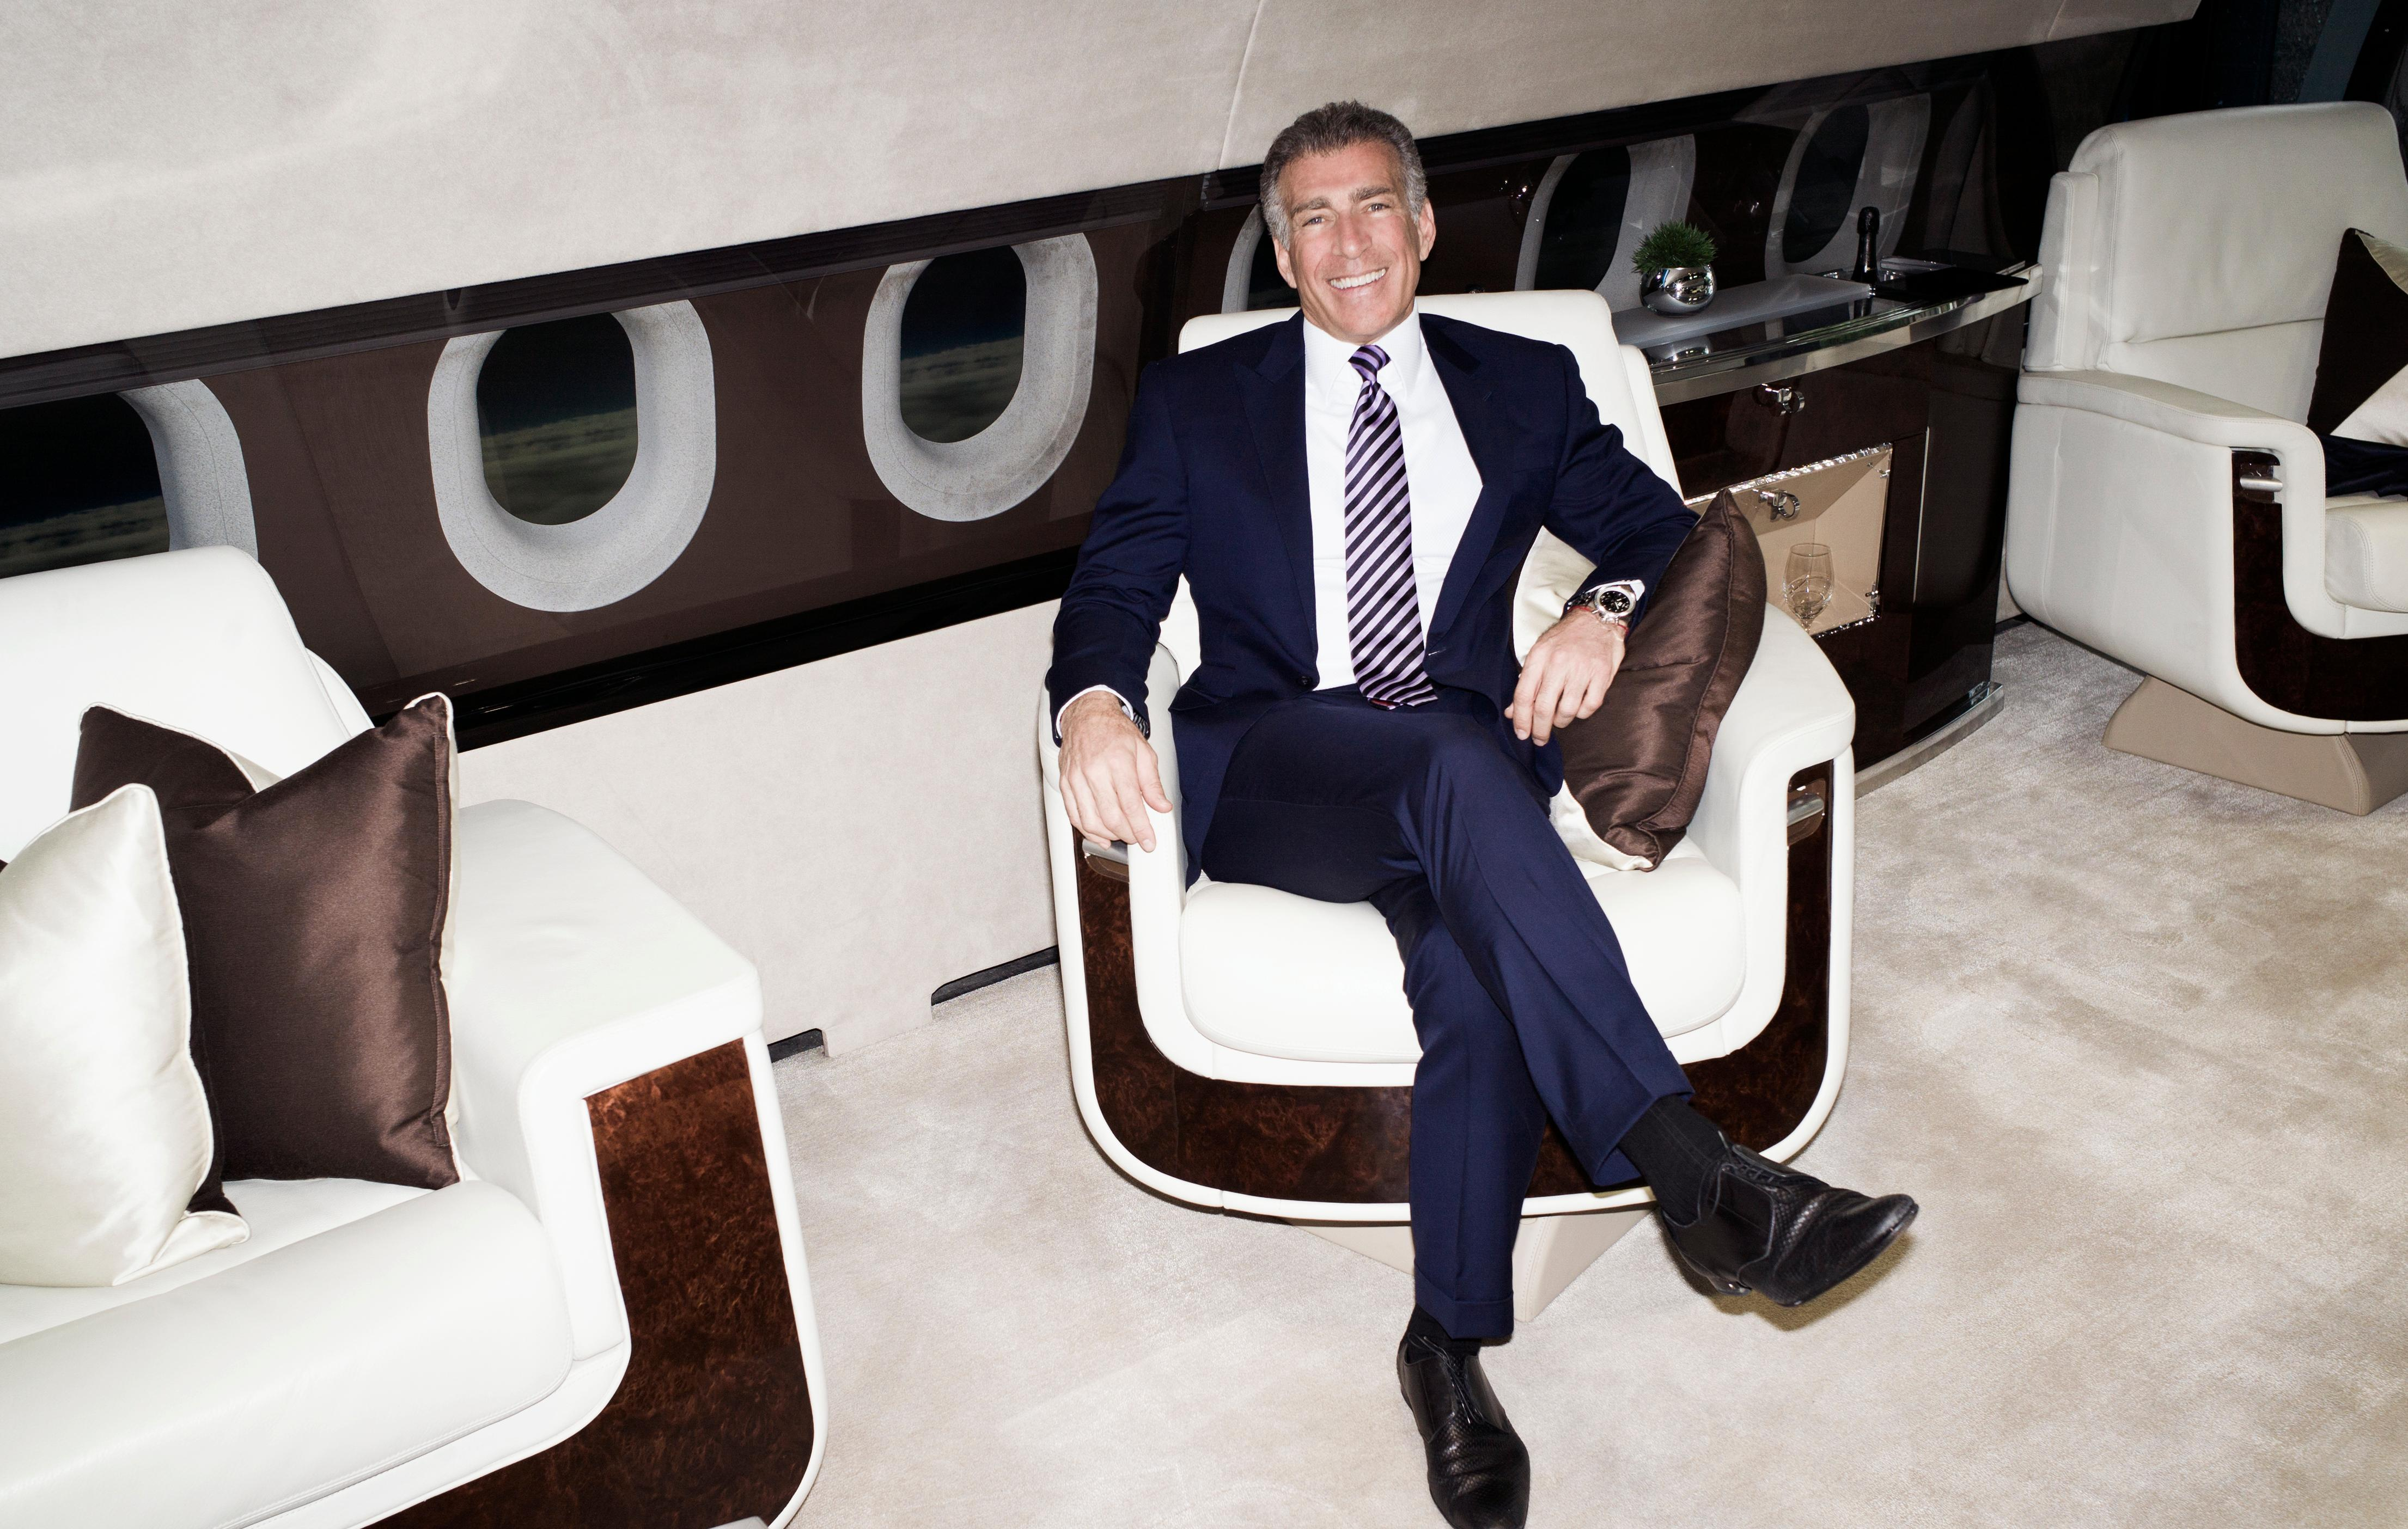 Sofa King Podcast Challenger Would You Buy A 34 Million Jet From Steve Varsano The Times